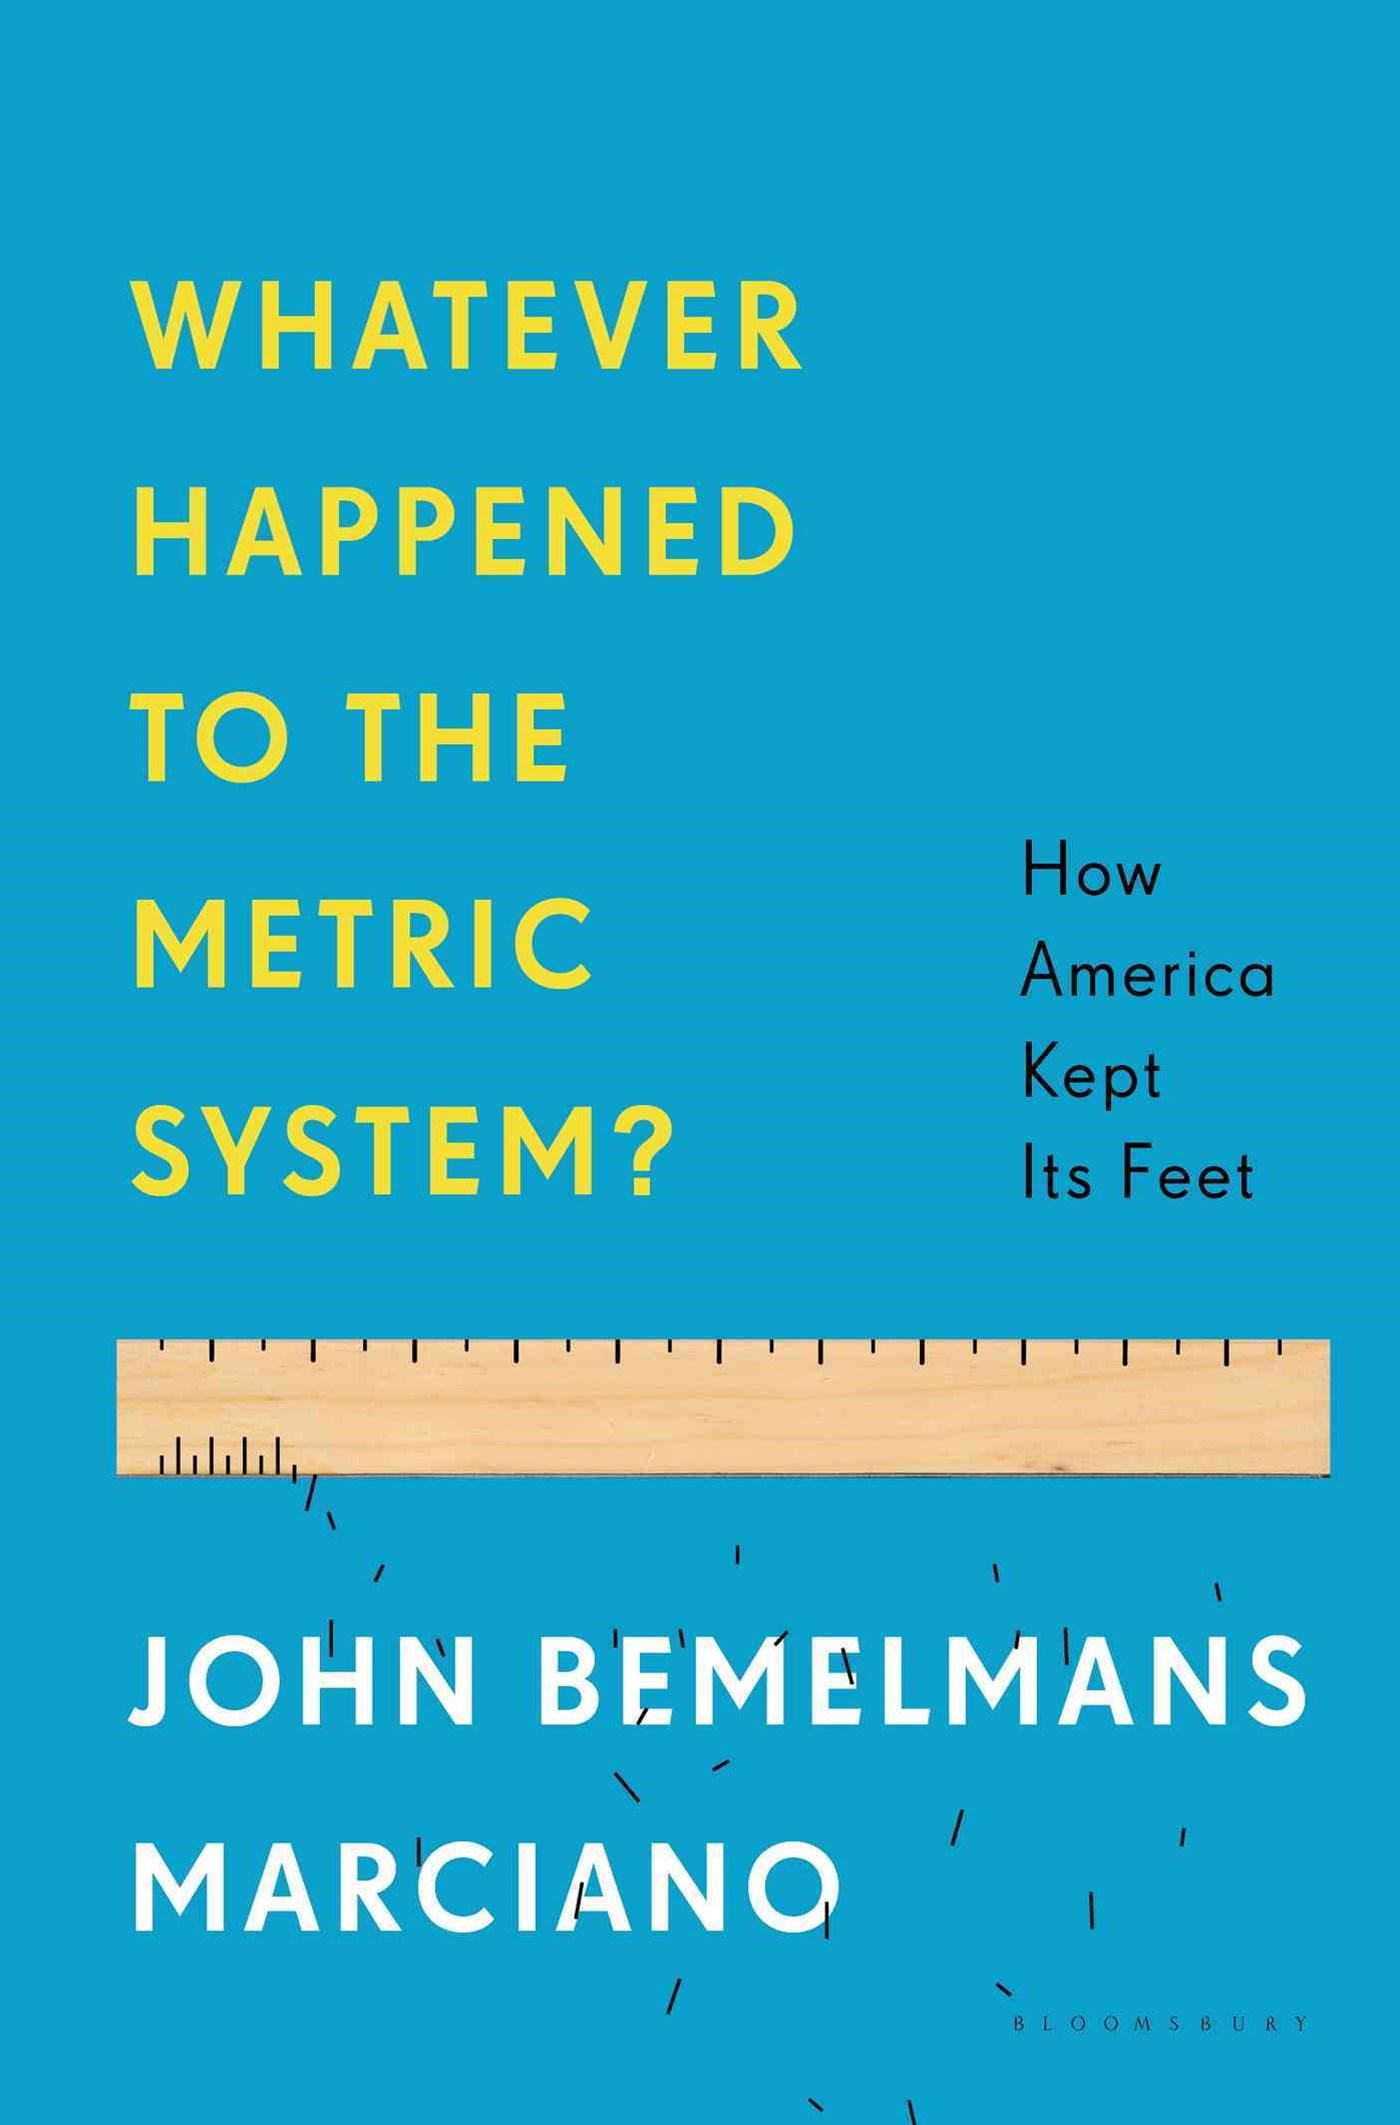 The Whatever Happened to the Metric System?